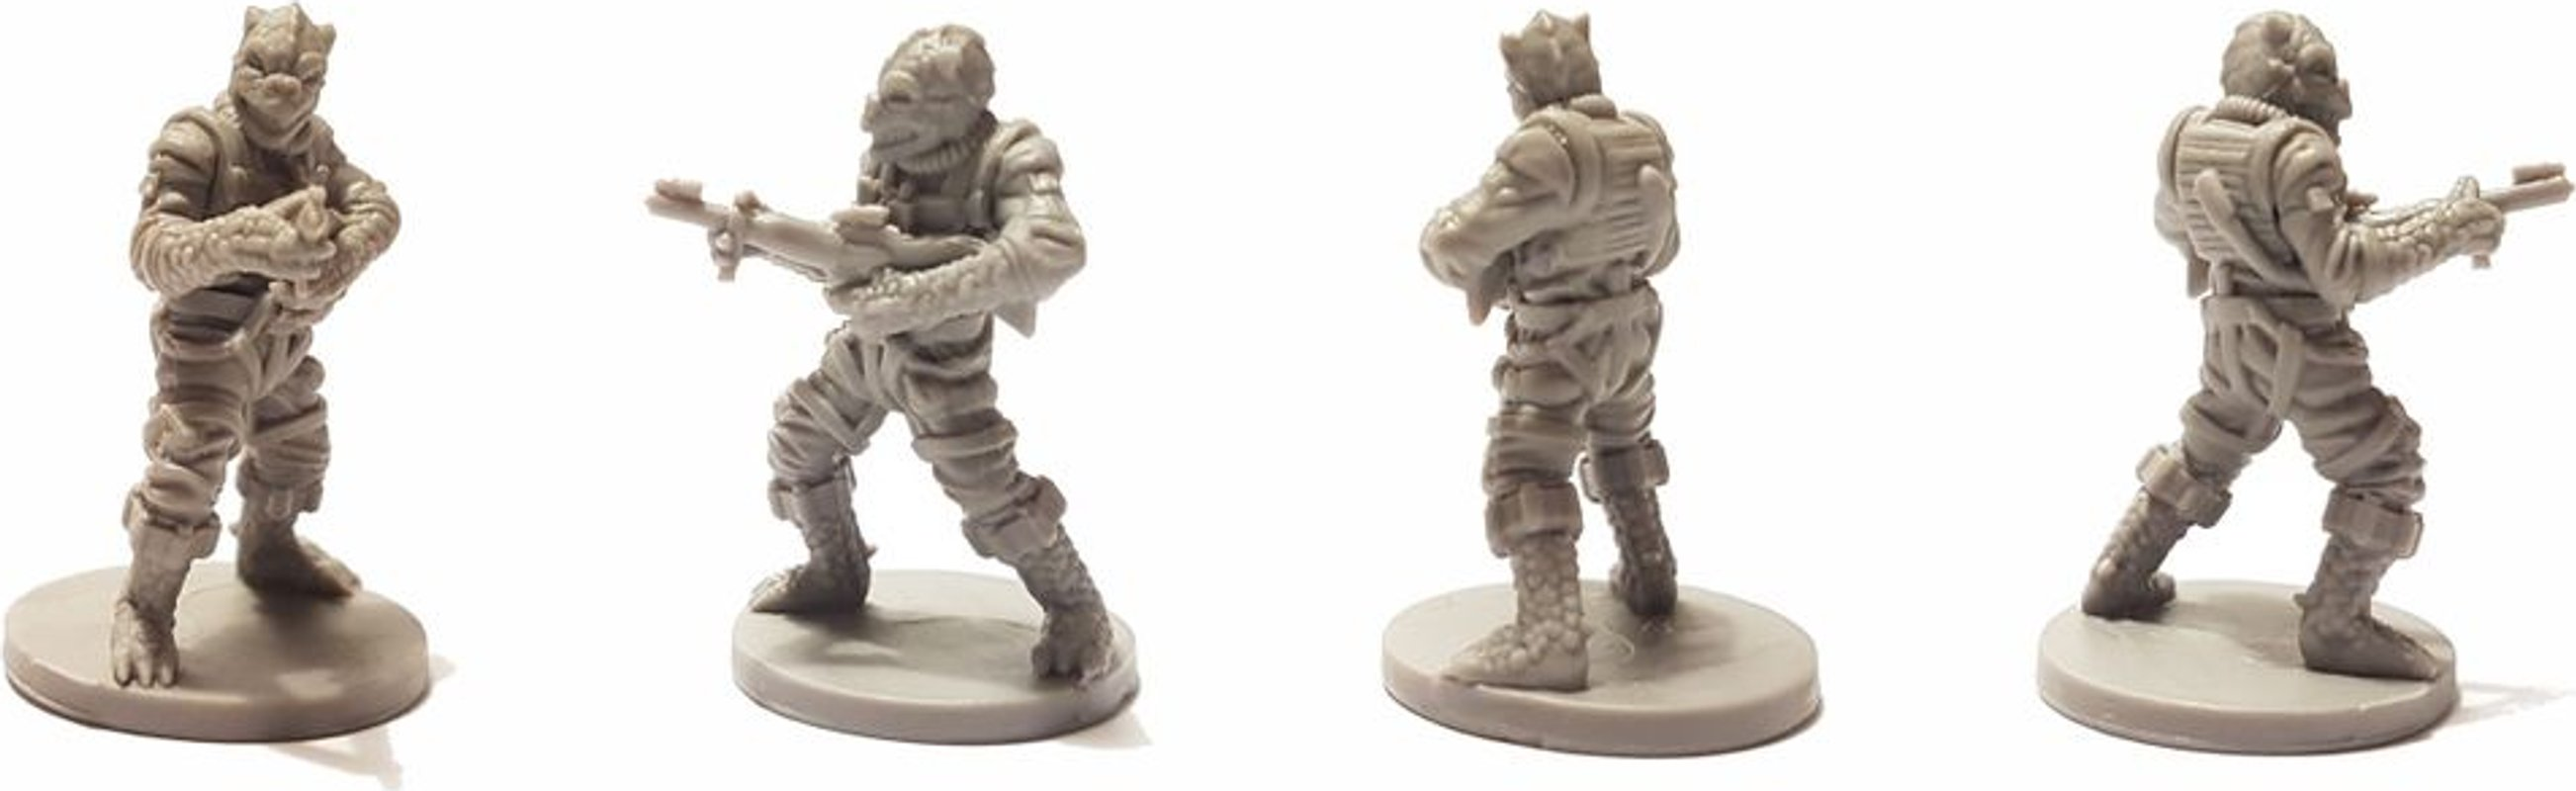 Star Wars: Imperial Assault - Bossk Villain Pack miniature